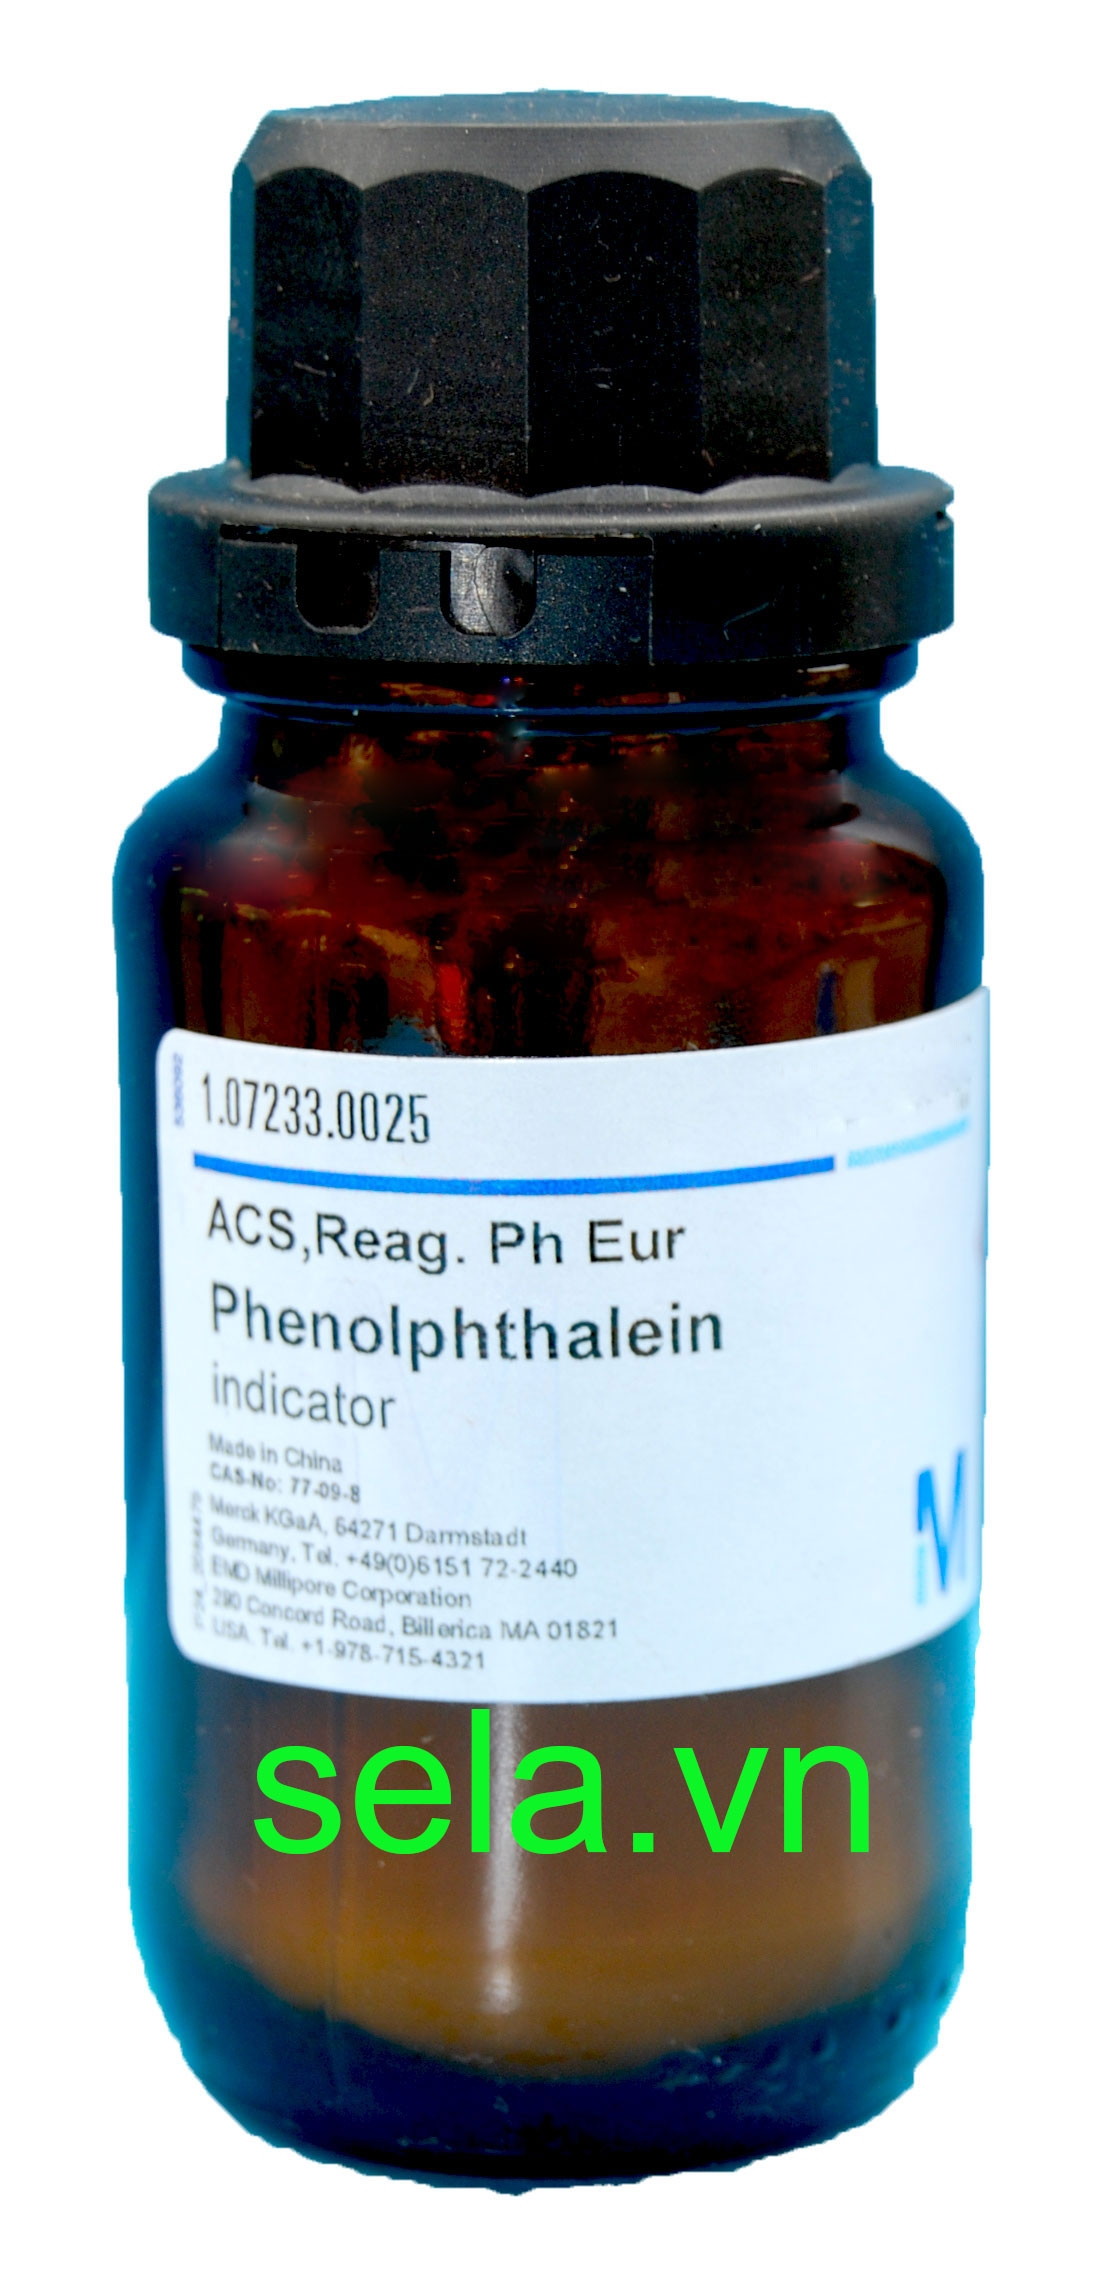 Phenolphthalein indicator ACS,Reag. Ph Eur